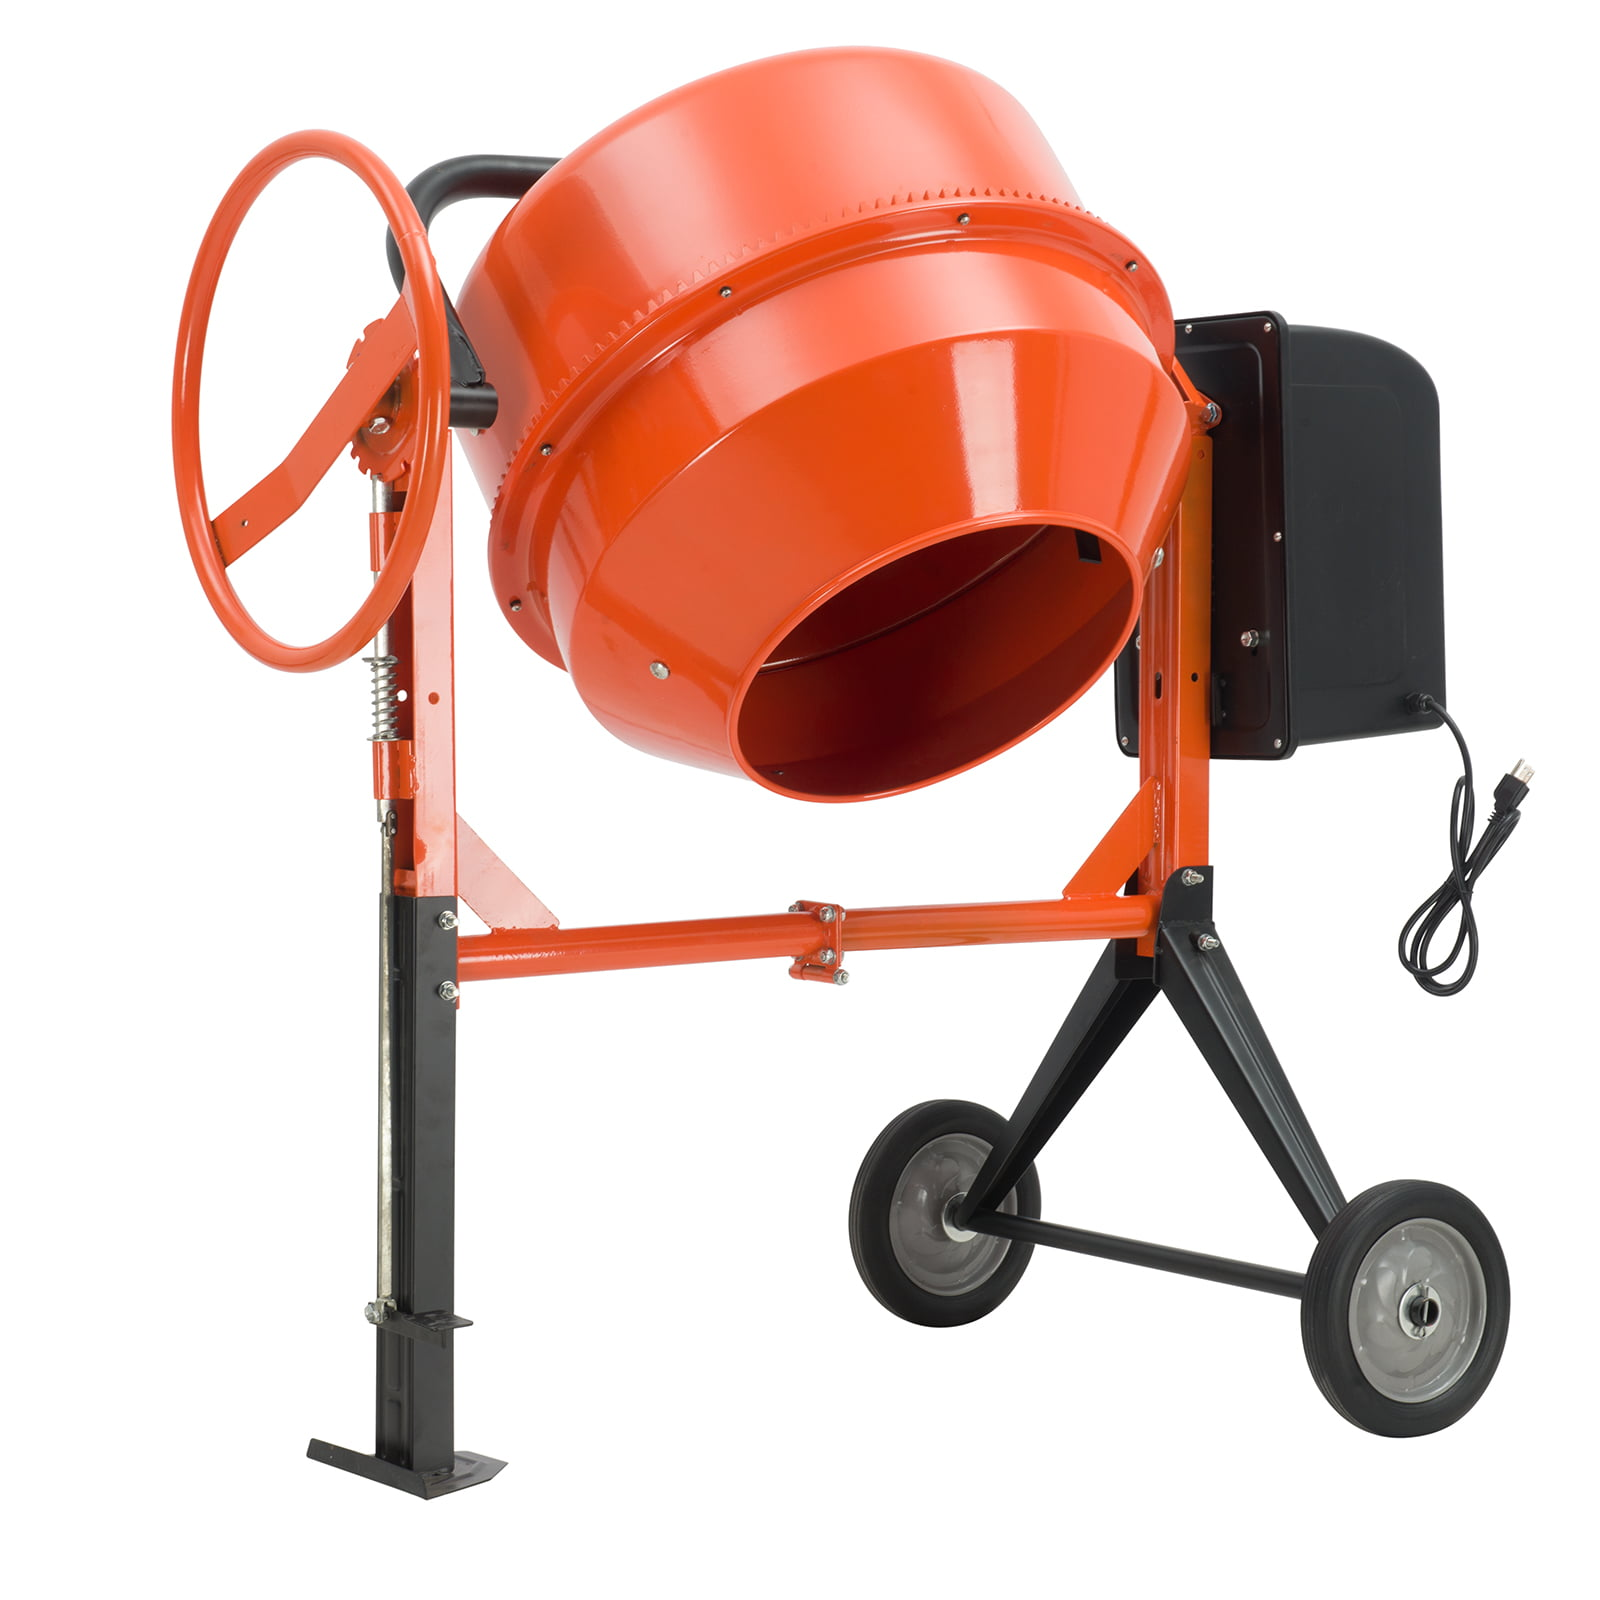 Concrete Cement Mixer SUNCOO 5cuft 1 2HP Electric Barrow Machine Mixing Mortar Portable by SUNCOO